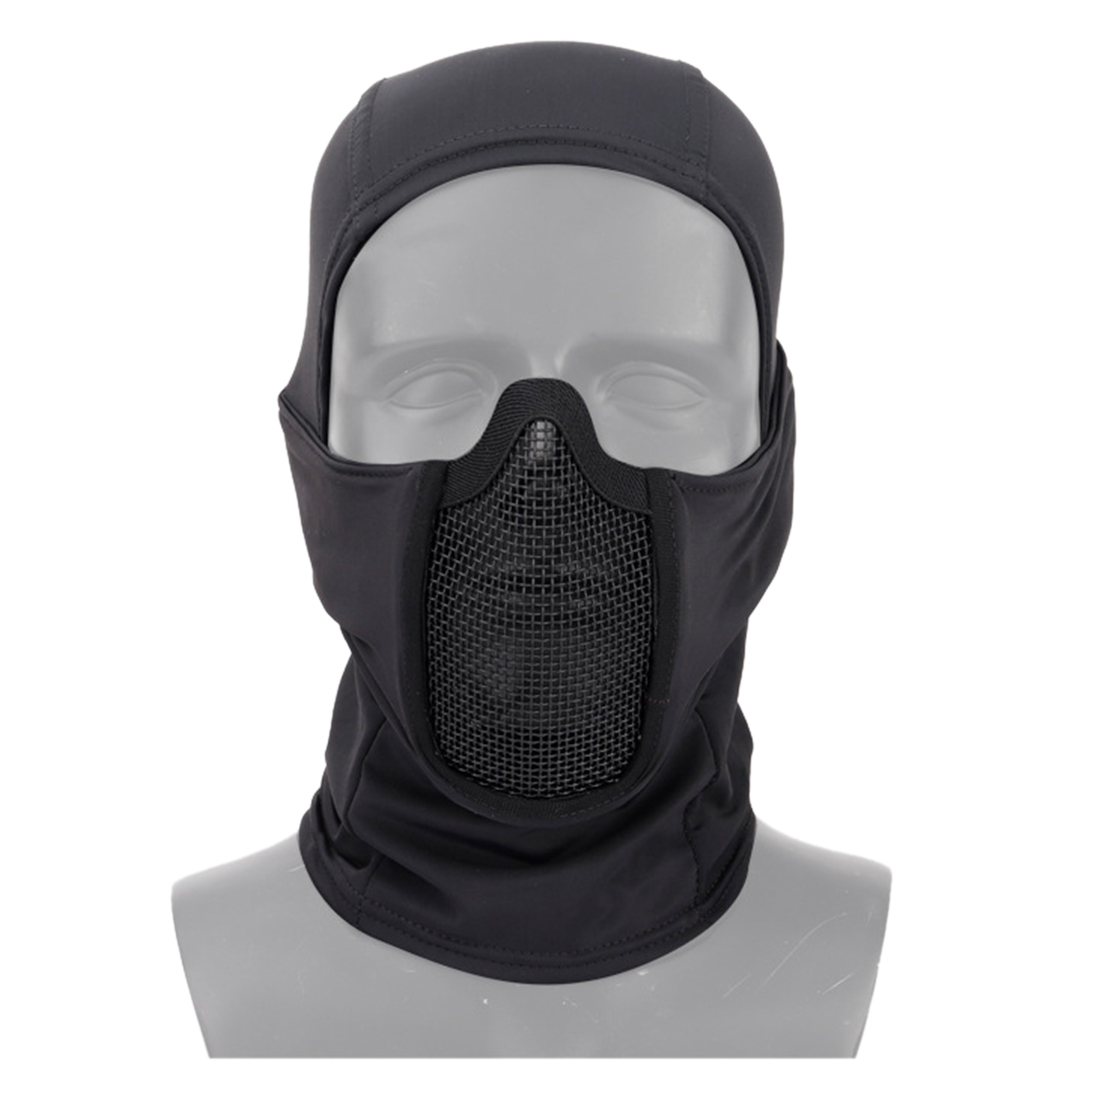 WST Breathable Tactical Hood Face Cover Mask Outdoor Battle Face Protective Mask For Airsoft Paintball- Black